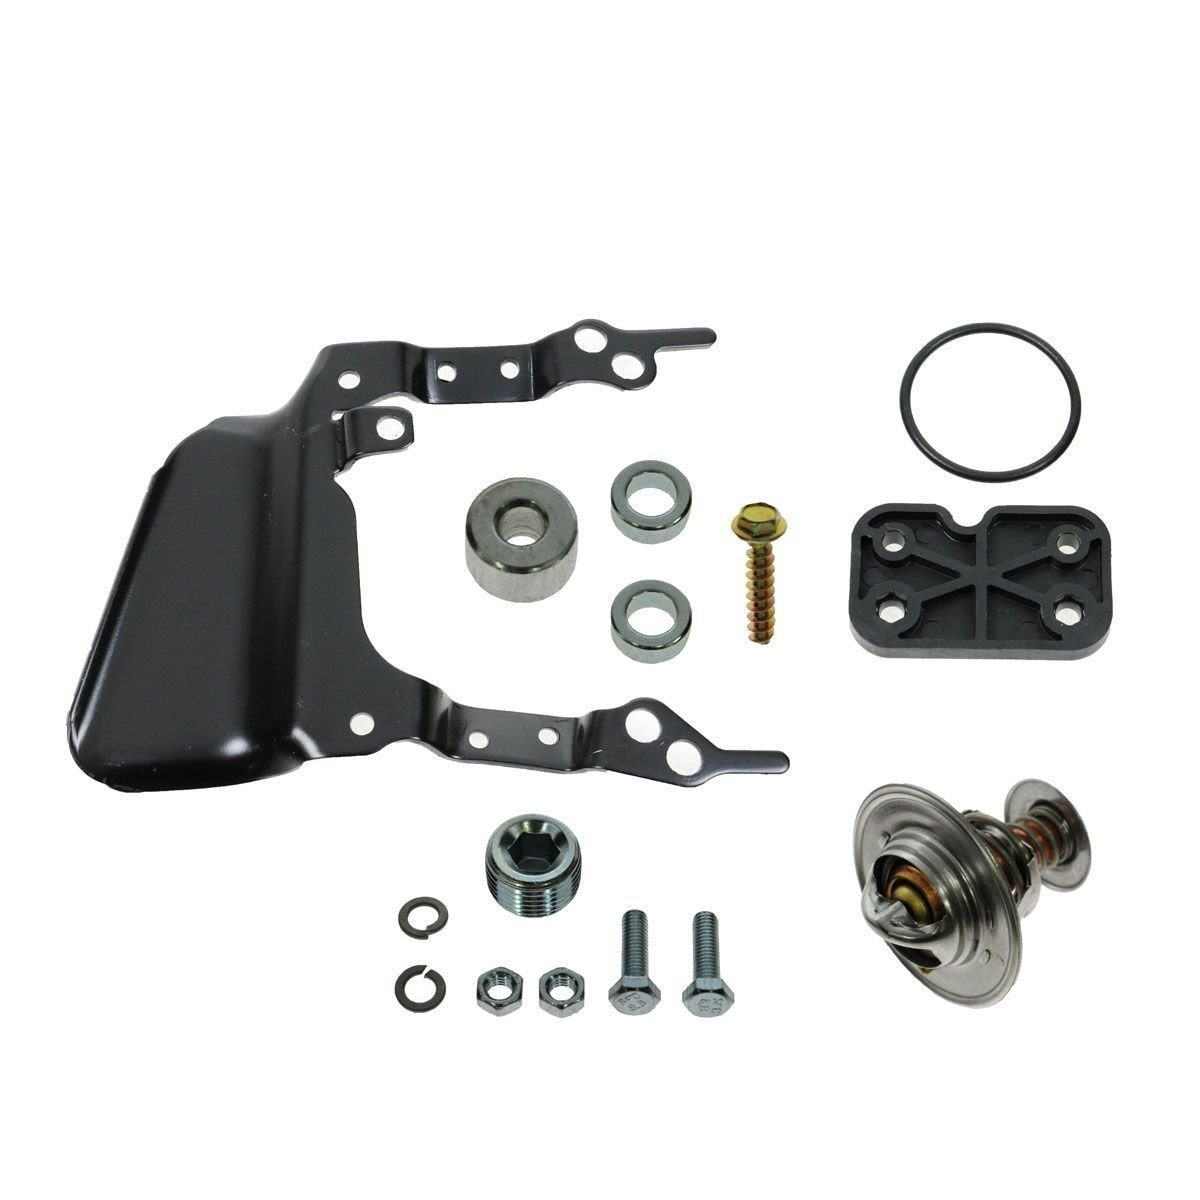 Intake Manifold W Thermostat Gaskets Kit New For Ford Lincoln Town Car Location Mercury 46l V8 Automotive